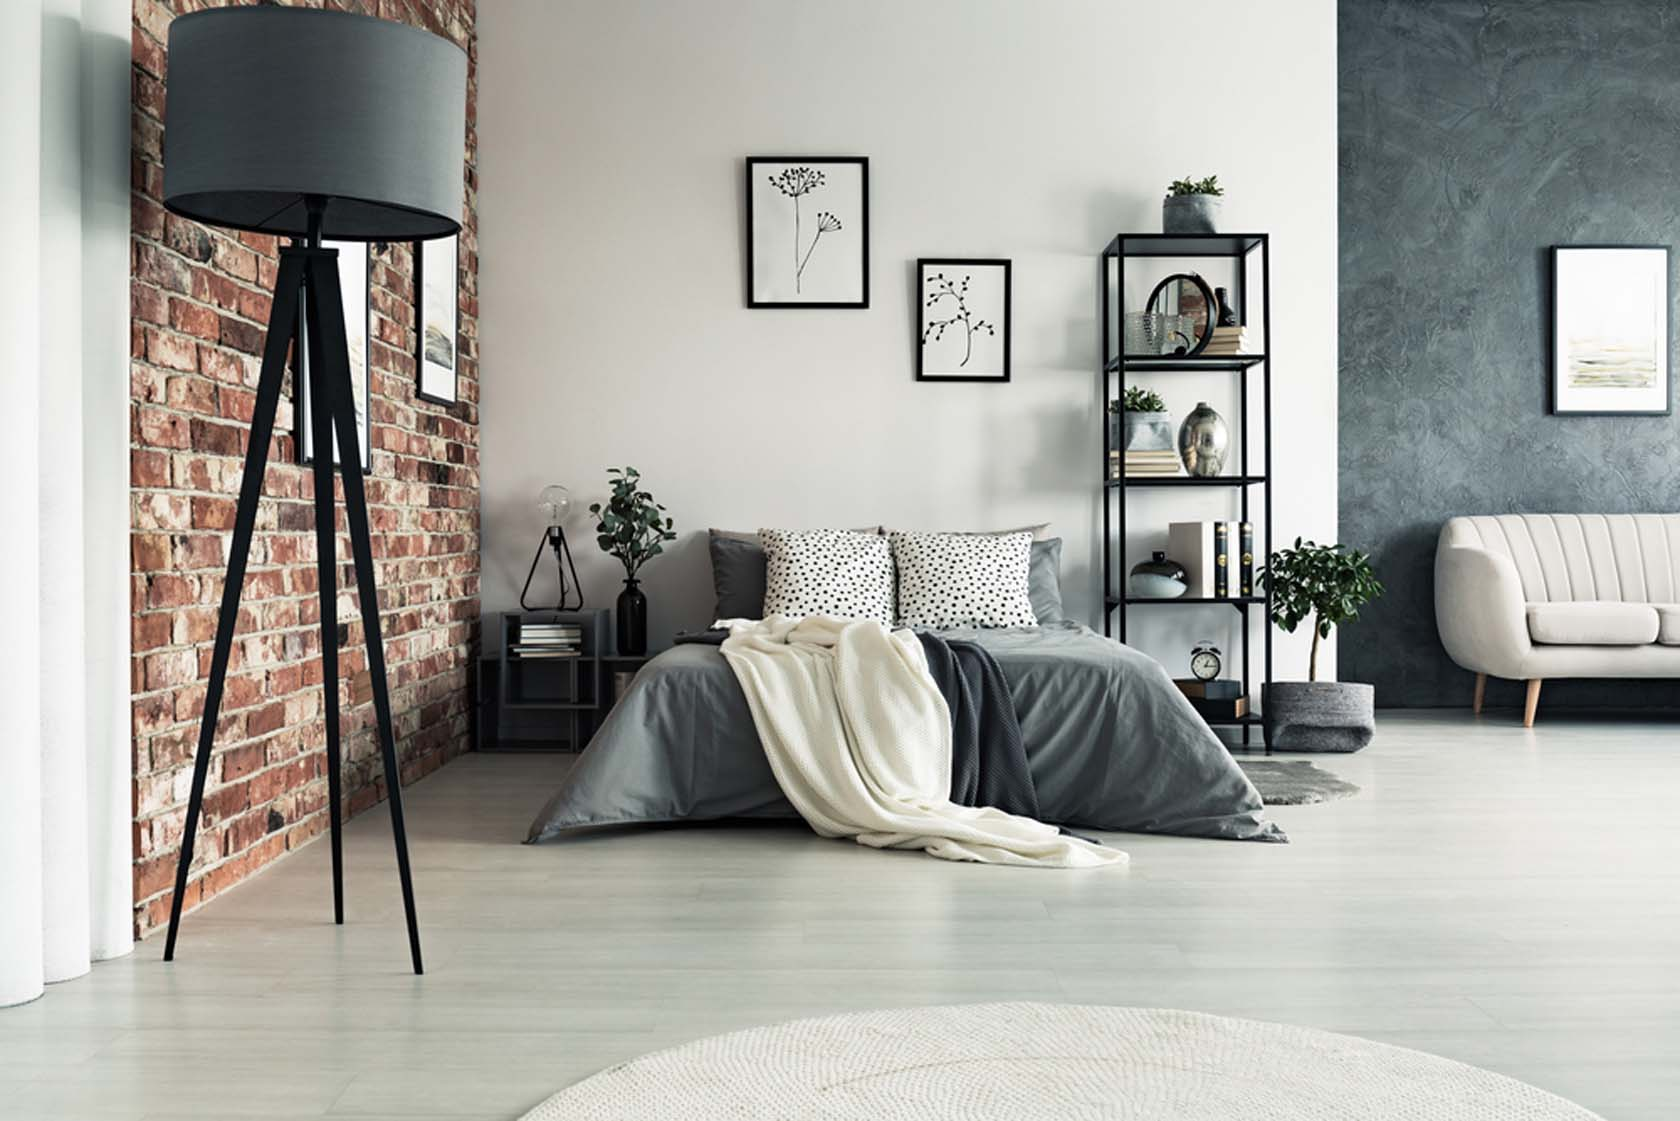 Maximize The Space In Your Small Home